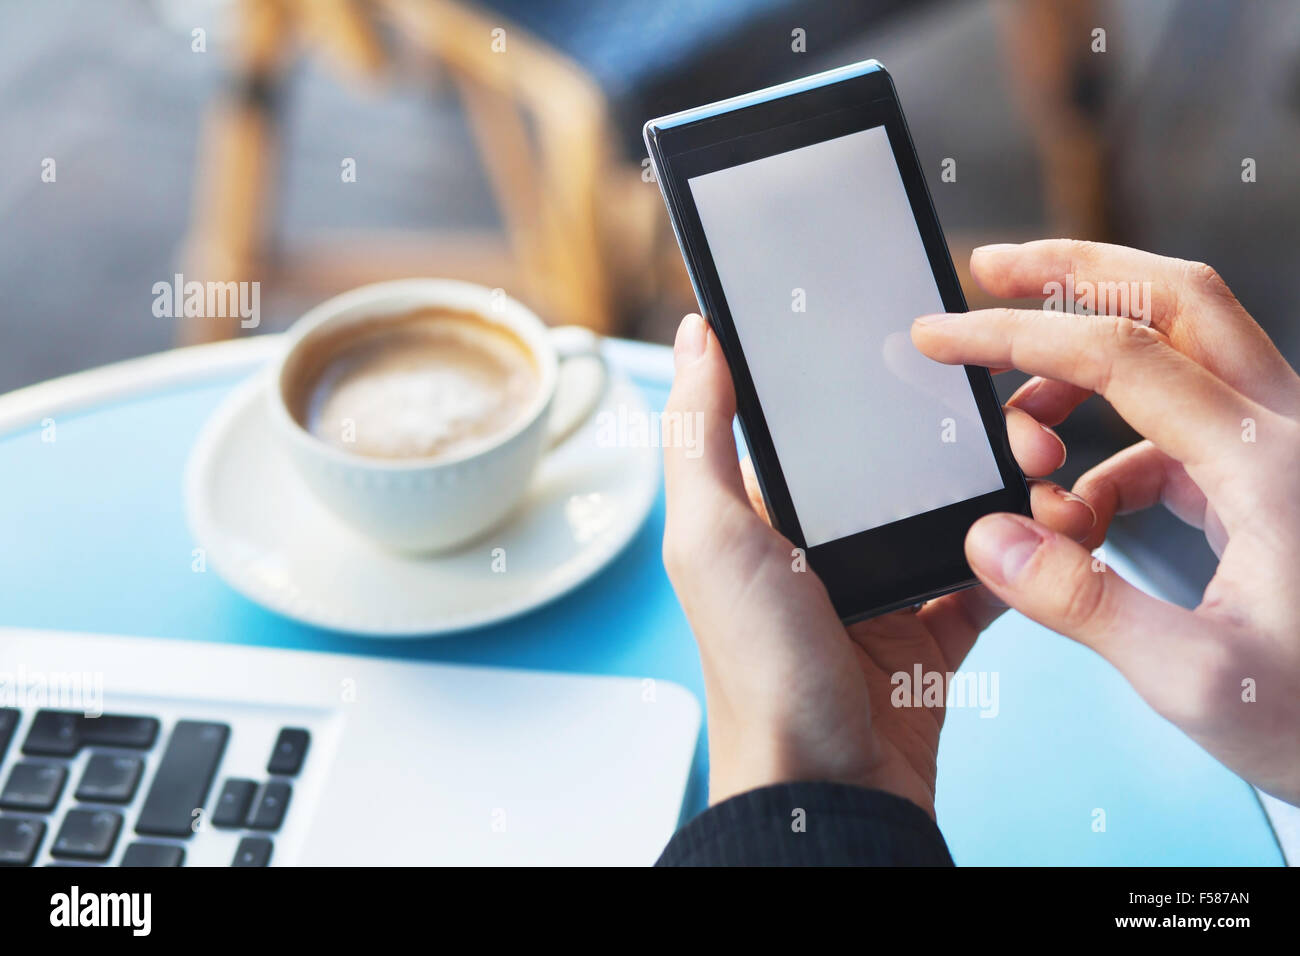 Les mains avec smart phone et tasse de café Photo Stock